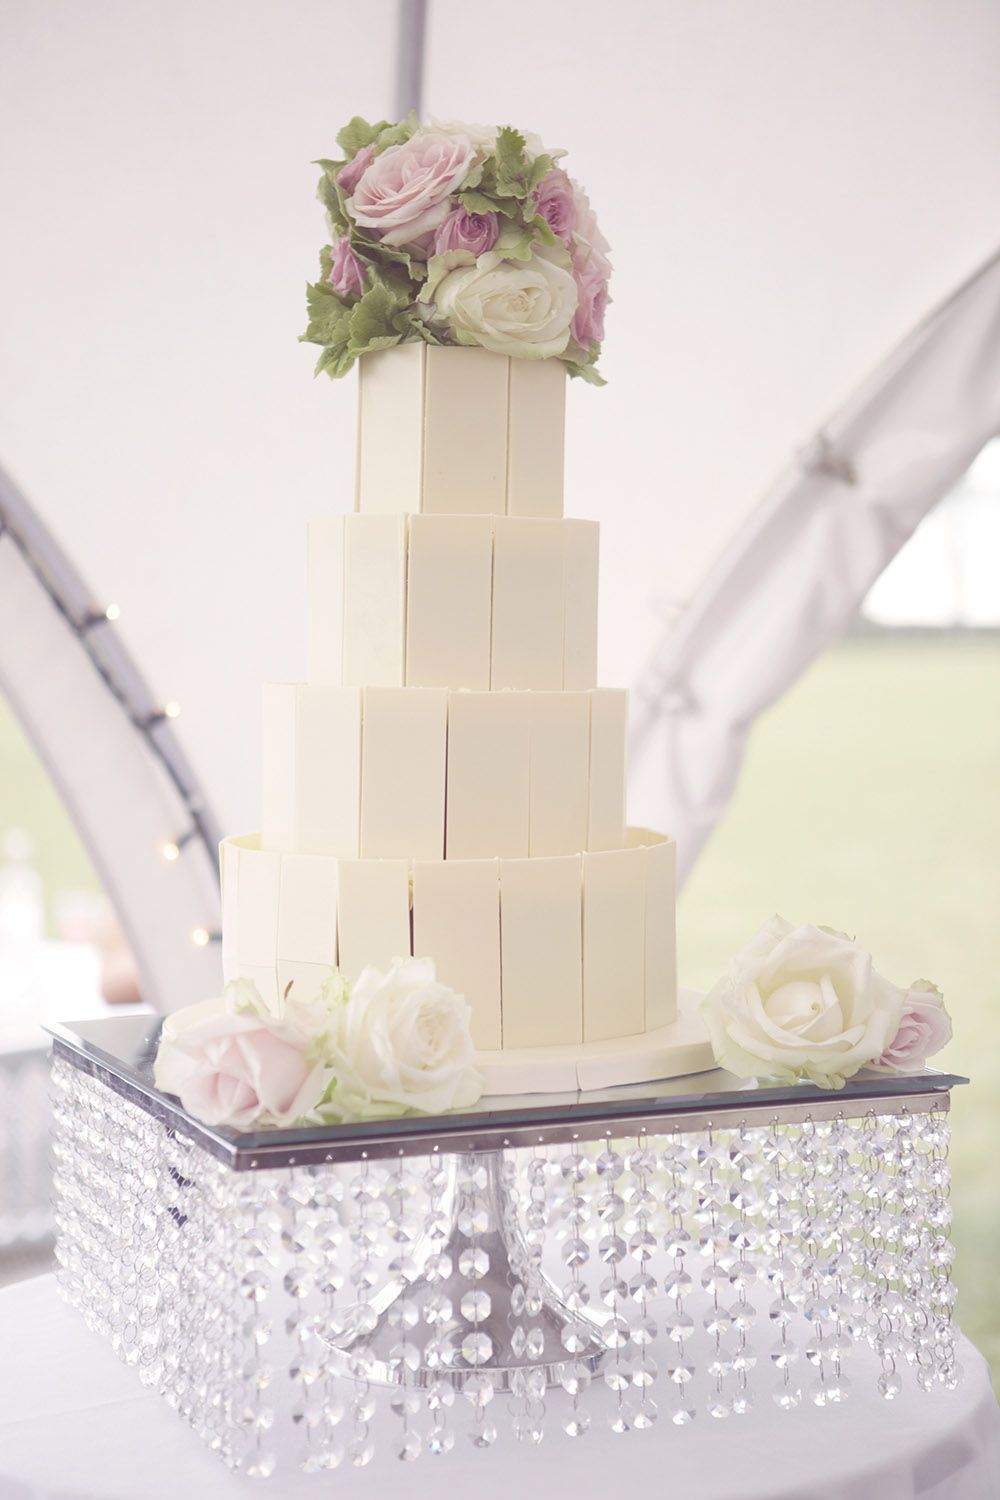 Wedding cake | Wedding Cake | Pinterest | Wedding cake, Cake and ...